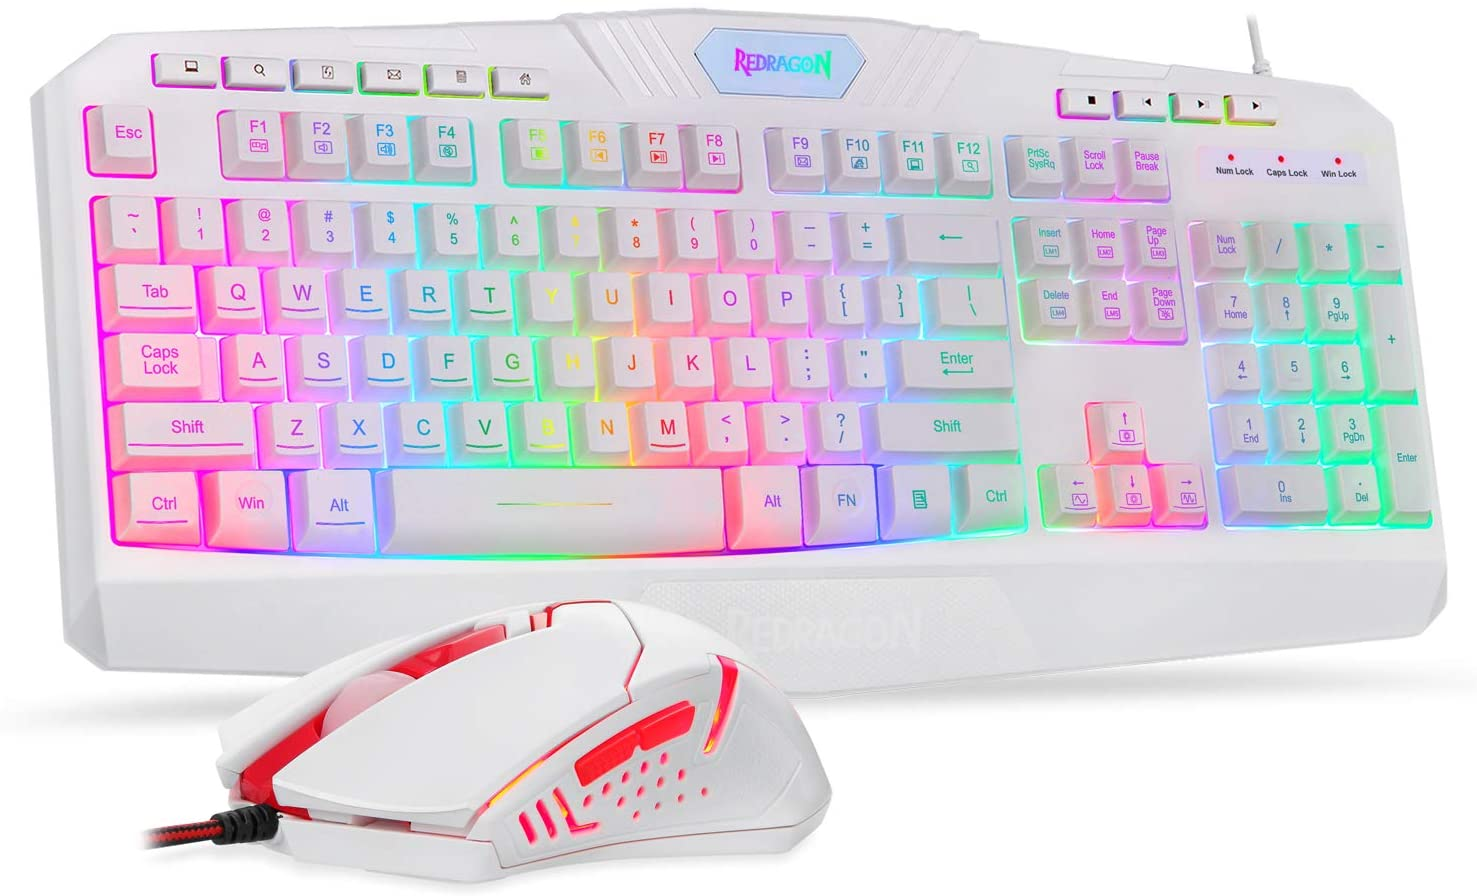 Gaming Mouse and Keyboard Set 8 Buttons RGB Backlit Mouse 7200 DPI for Windows Computer Gamers Redragon S101-BB PC Gaming Keyboard Mouse Combo RGB LED Backlit Wired with Macro /& Multimedia Keys